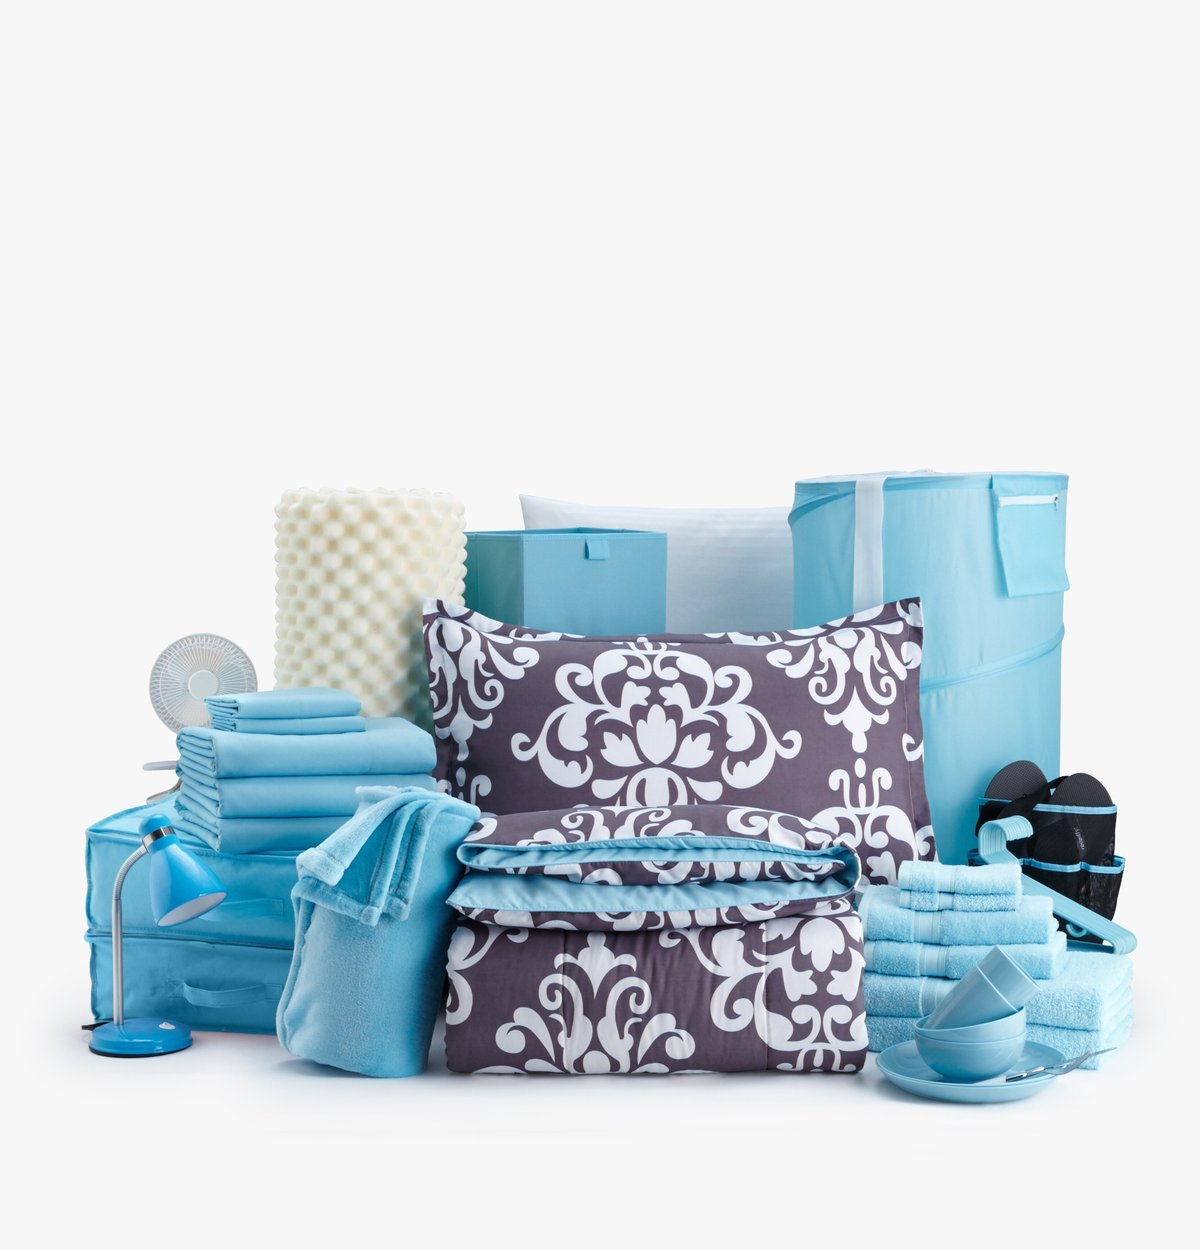 Dorm It Up - The Good Life Set - Twin XL College Dorm Room Bedding (Chic)